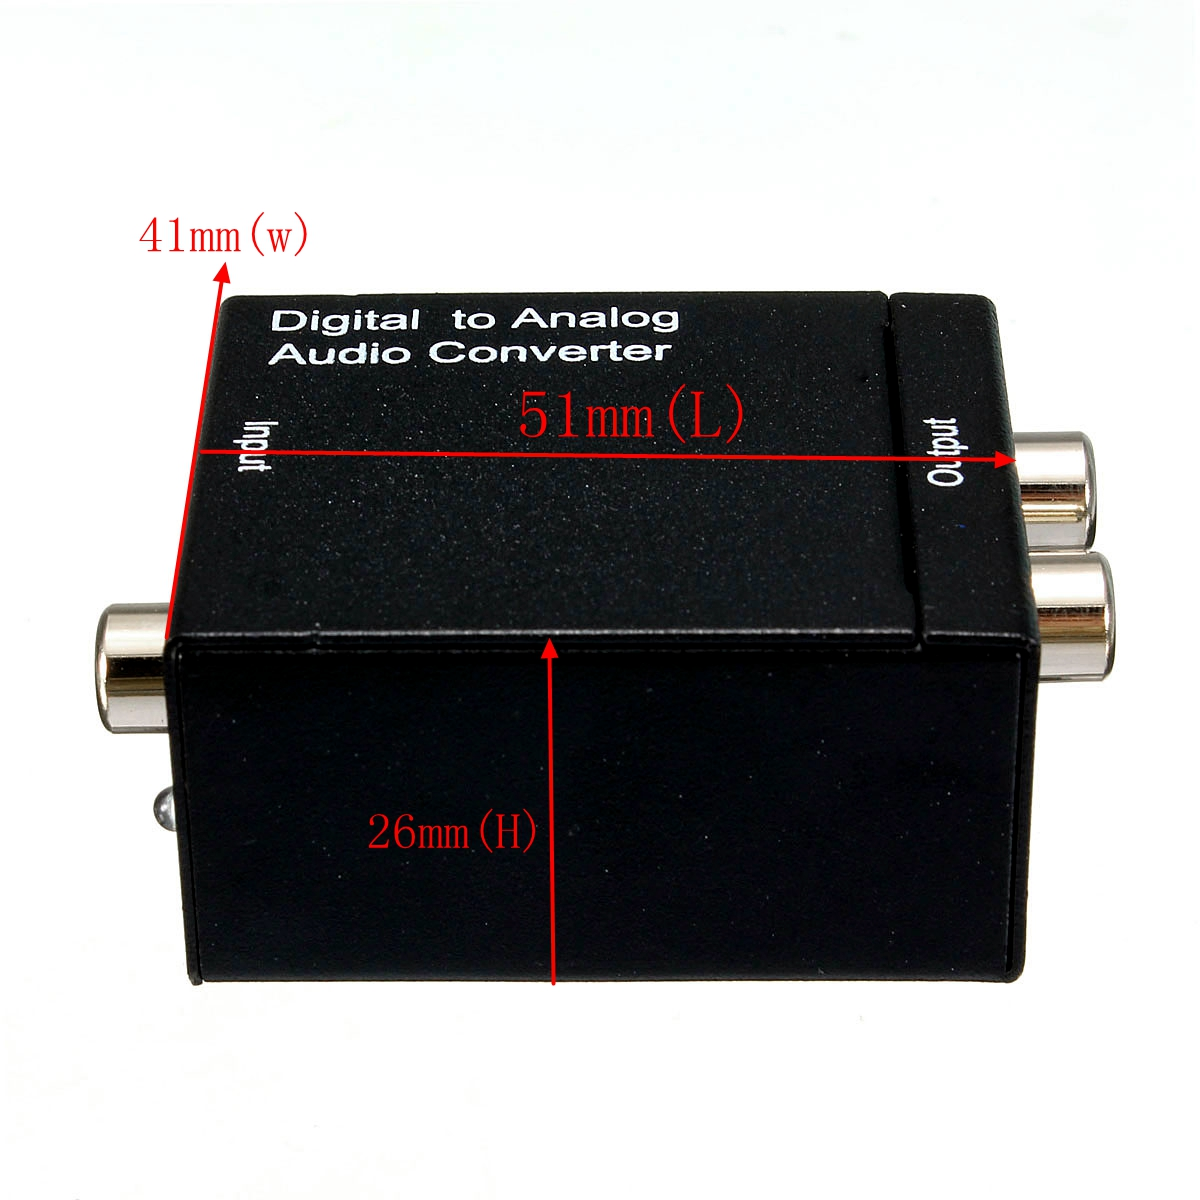 5V DC Digital Optical Toslink or SPDIF Coax to Analog L/R RCA Audio Adapter Convetor